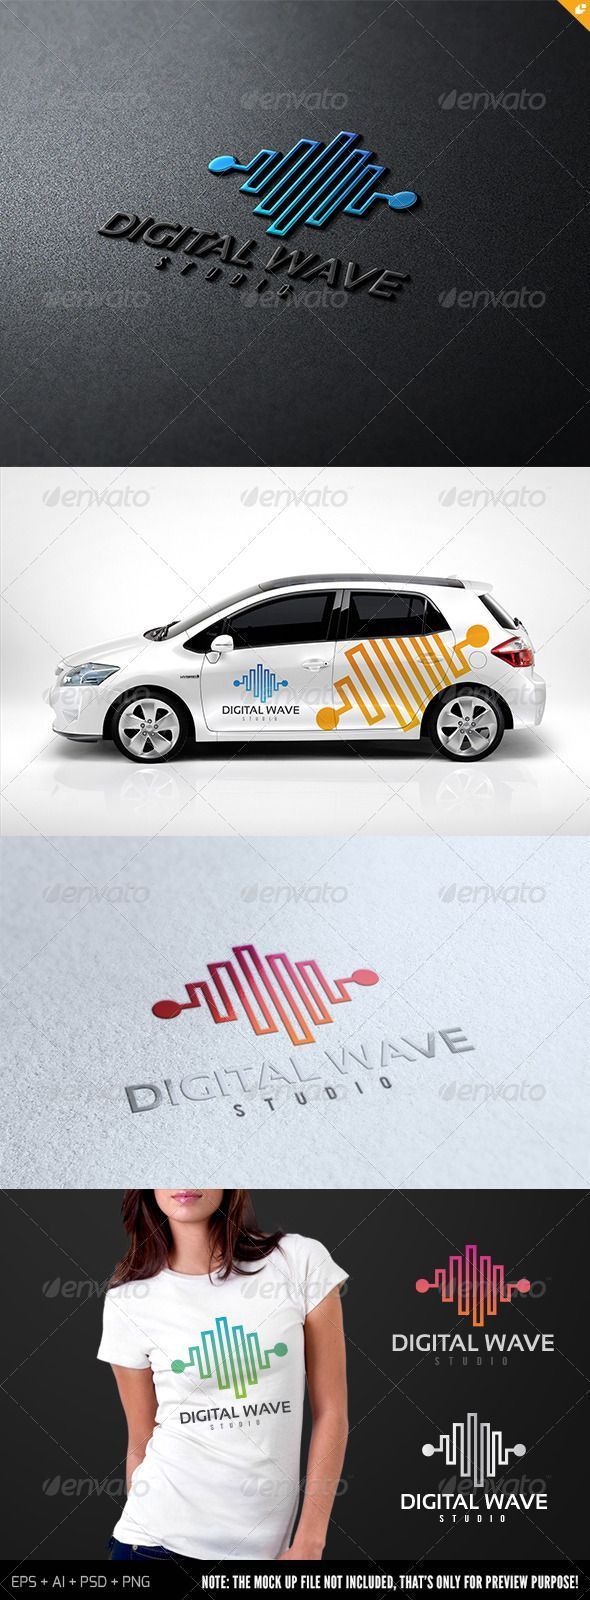 Digital Wave Studio - Logo Design Template Vector #logotype Download it here: http://graphicriver.net/item/digital-wave-studio-logo/7087099?s_rank=785?ref=nesto